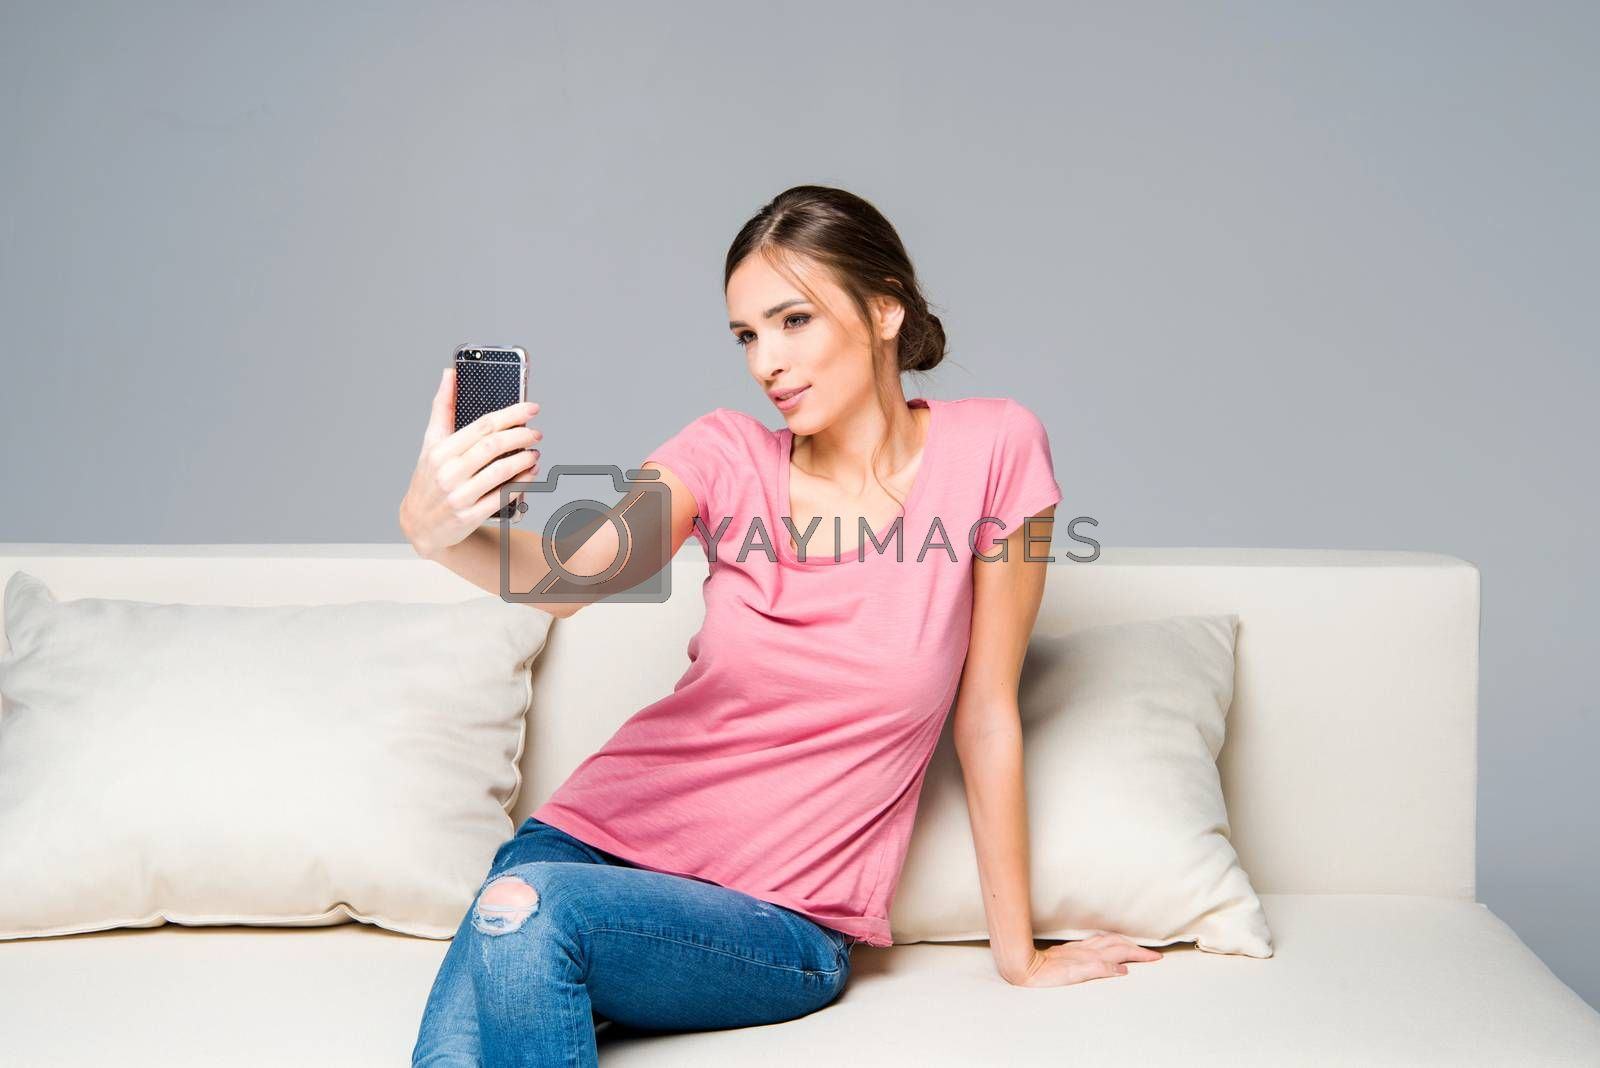 Smiling young woman sitting on white couch and taking selfie